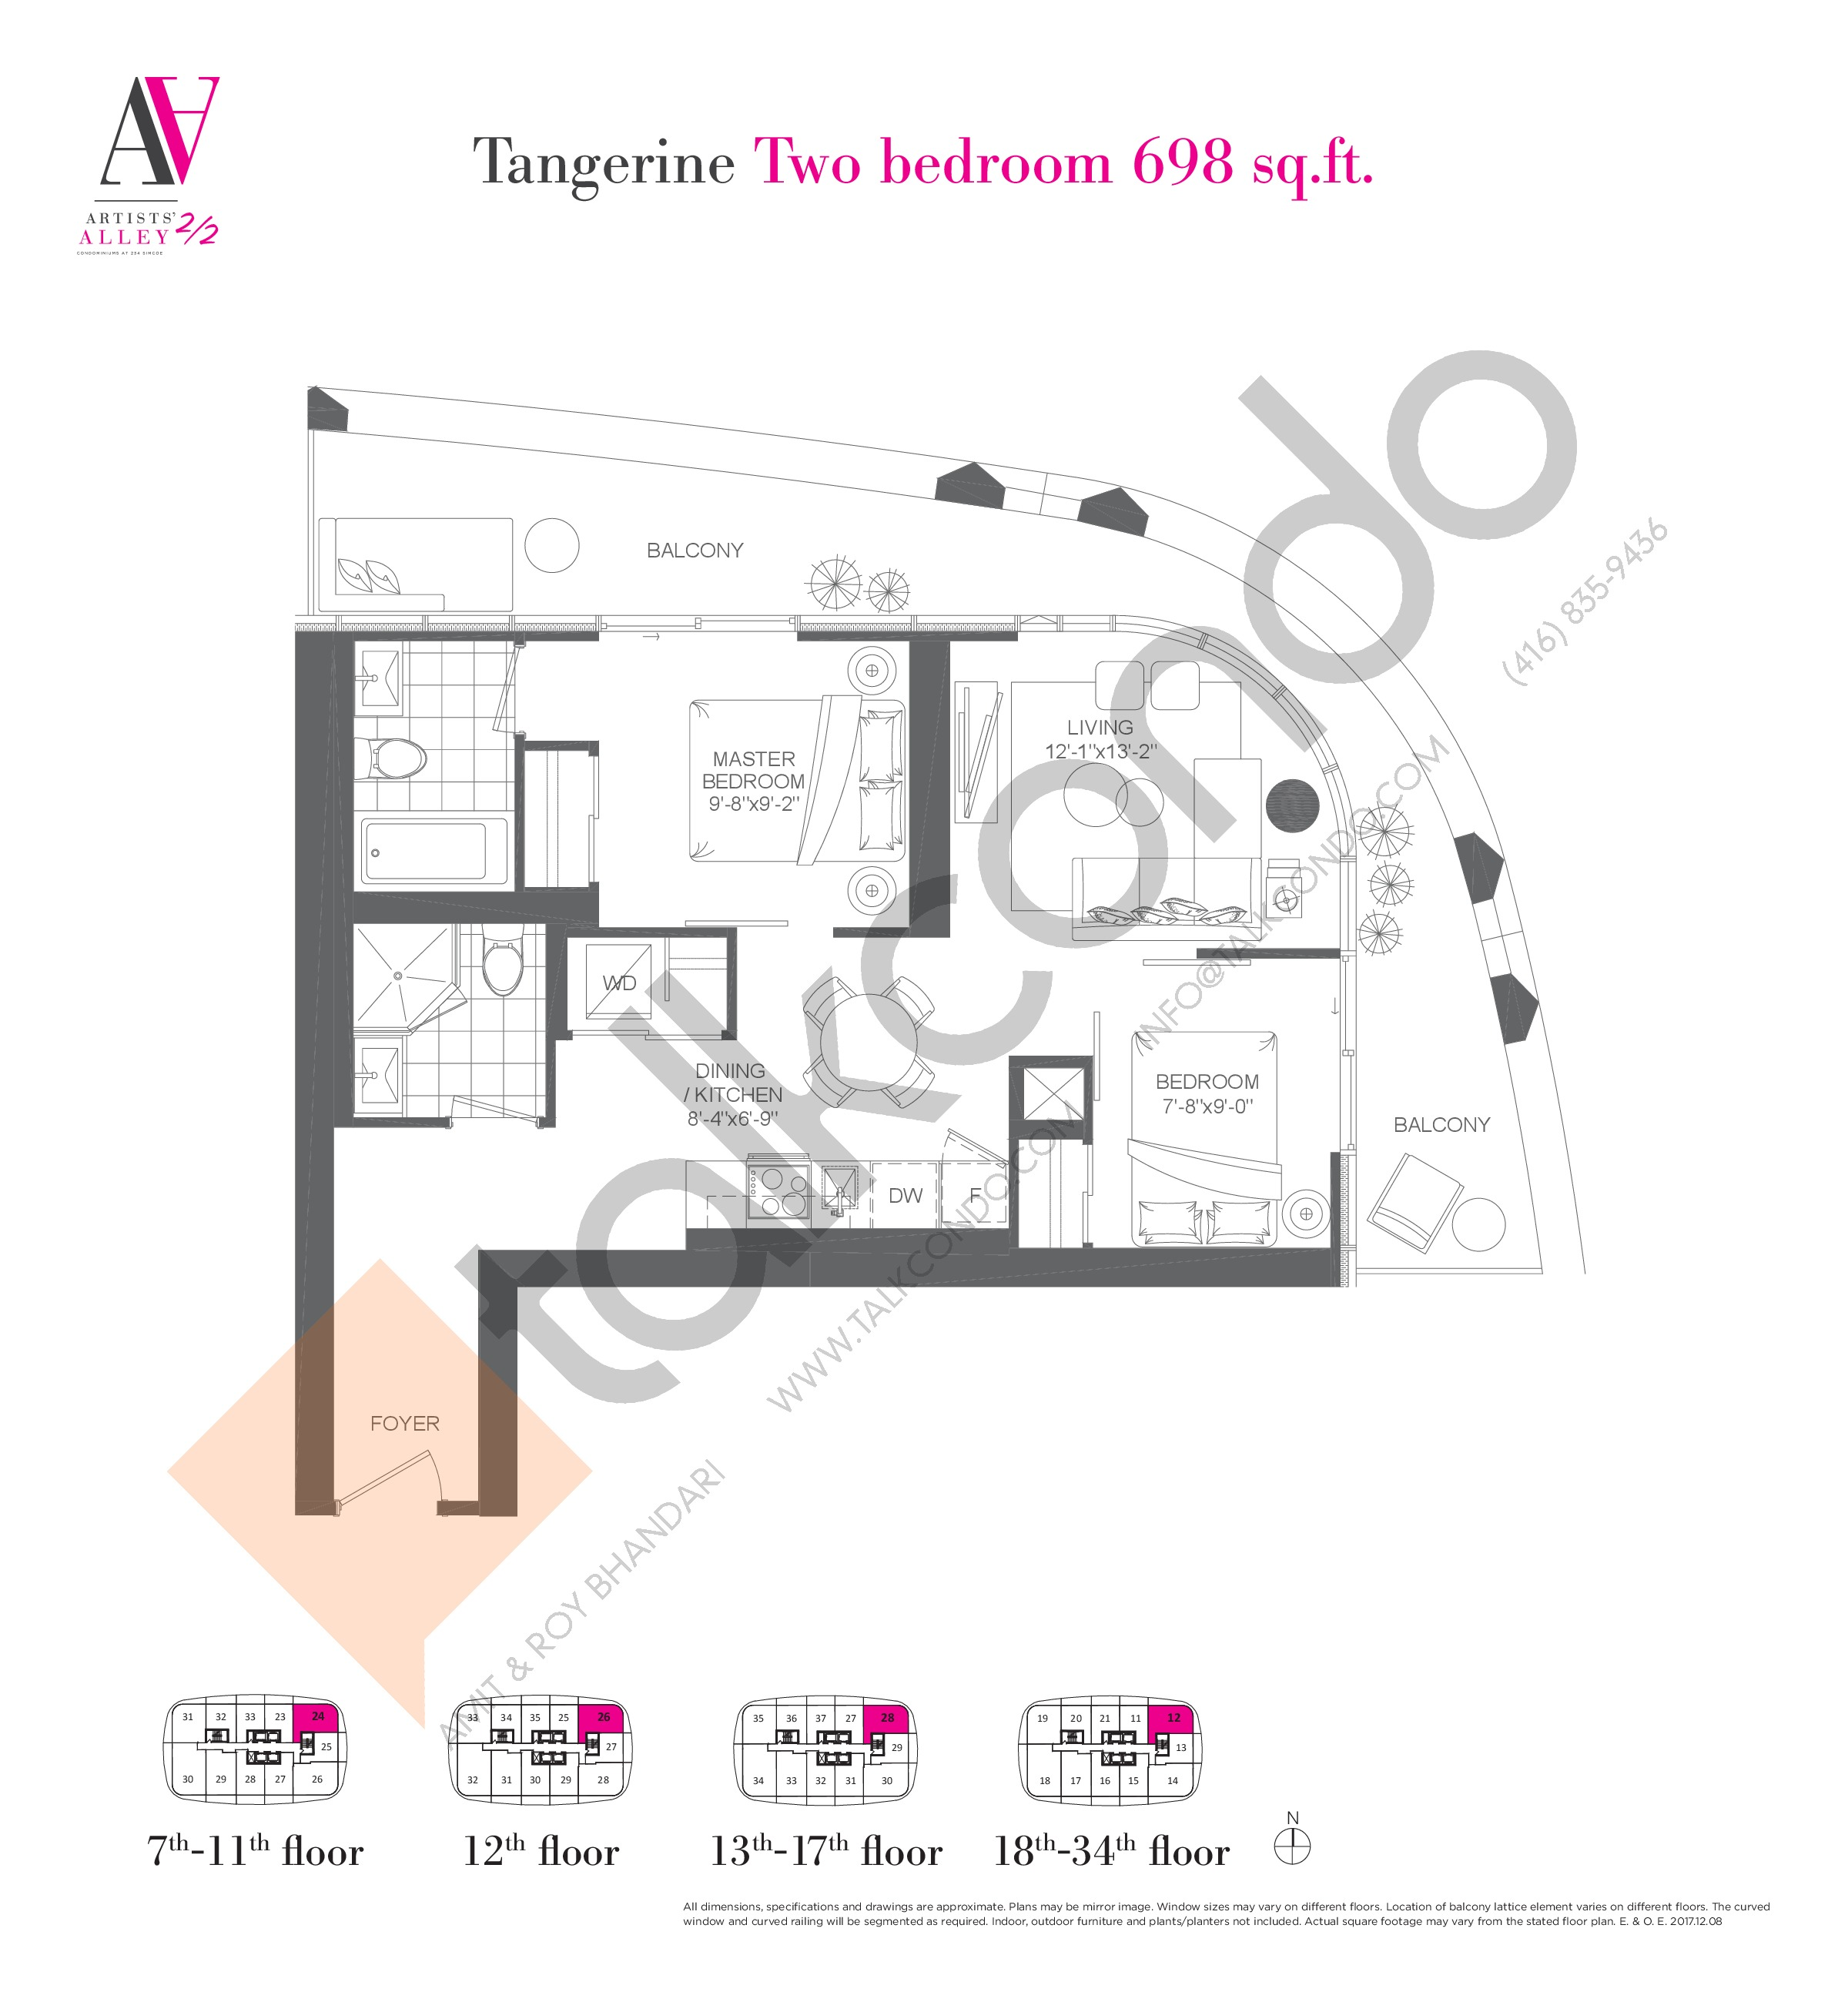 Tangerine Floor Plan at Artists' Alley 2 Condos - 698 sq.ft